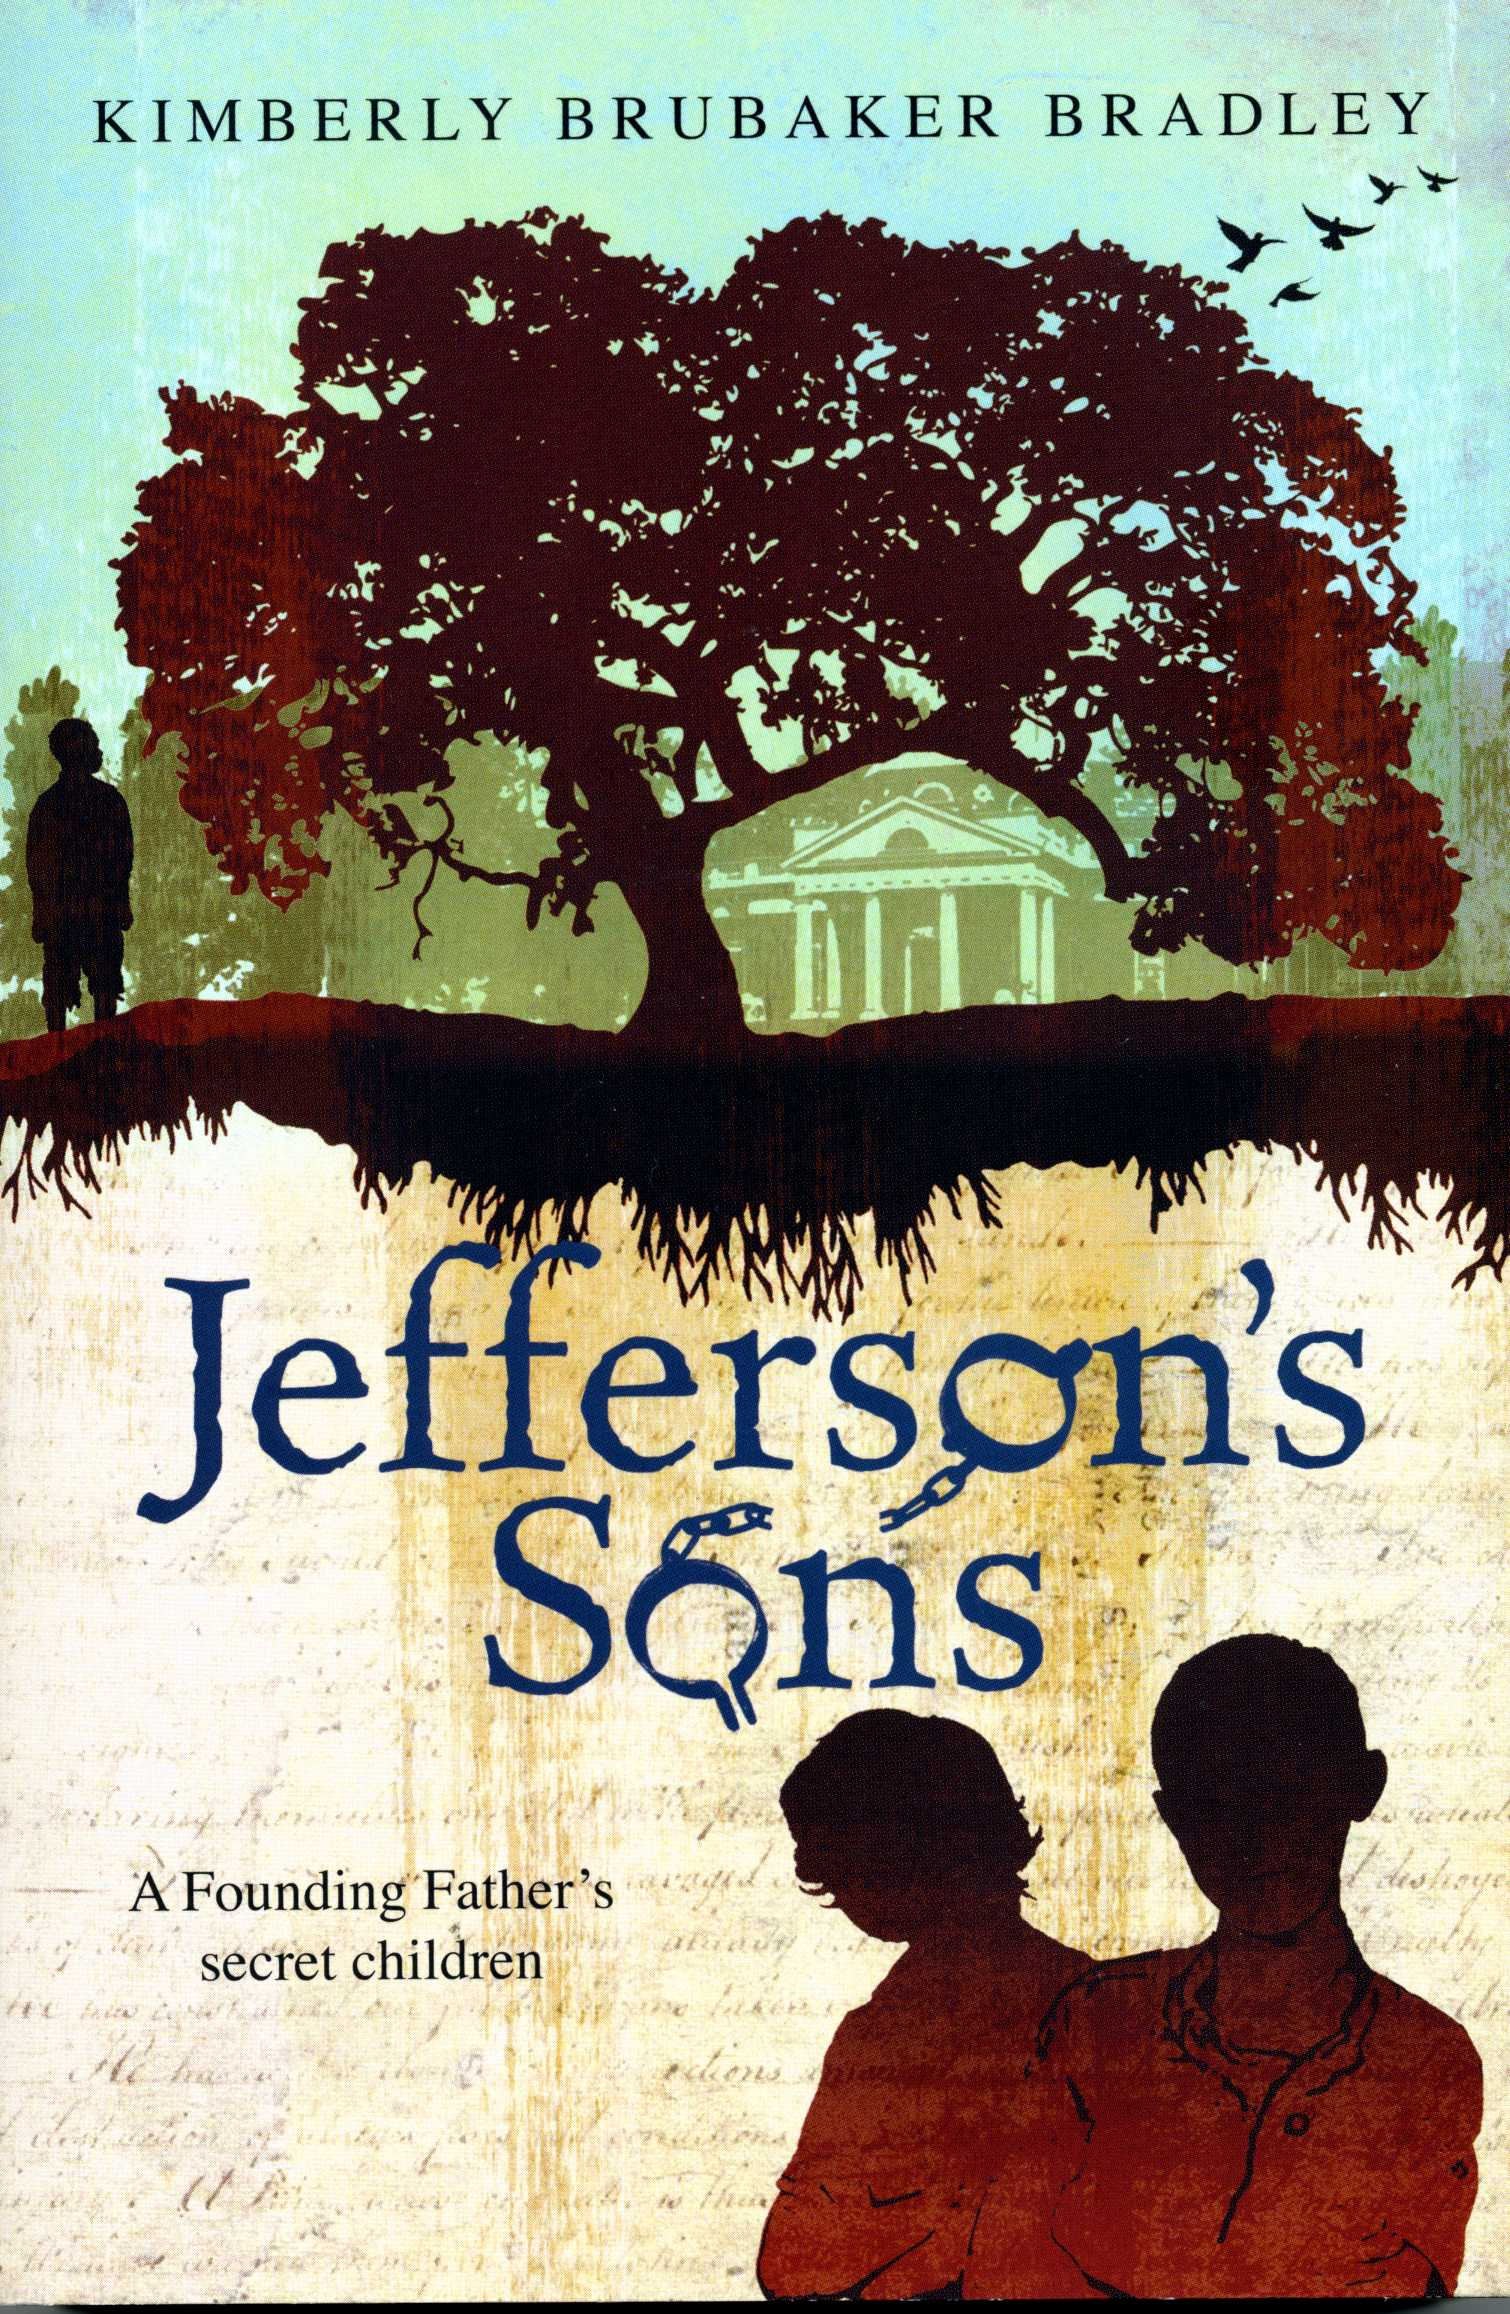 Jefferson's Sons Paperback Book (600L)